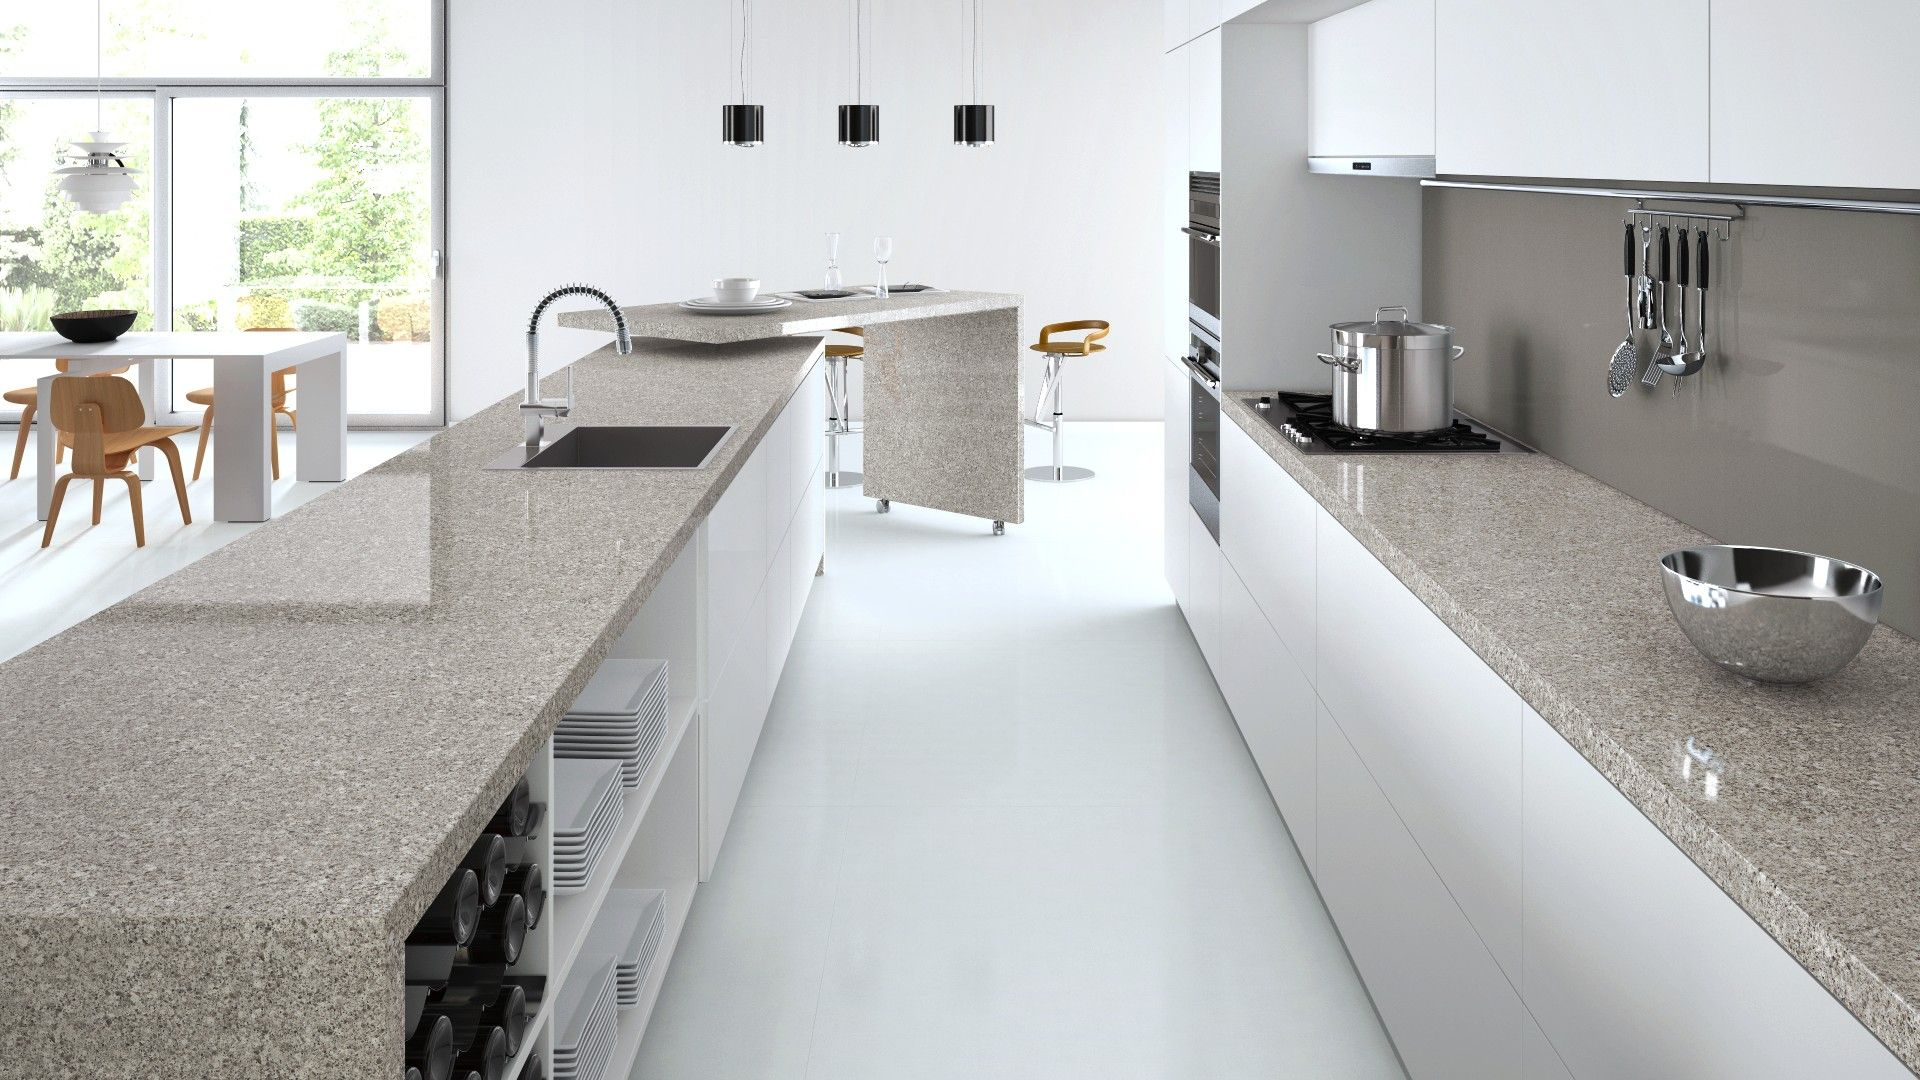 Atlantic Keuken Caesarstone Atlantic Salt Furniture Kitchen Kitchen Flooring